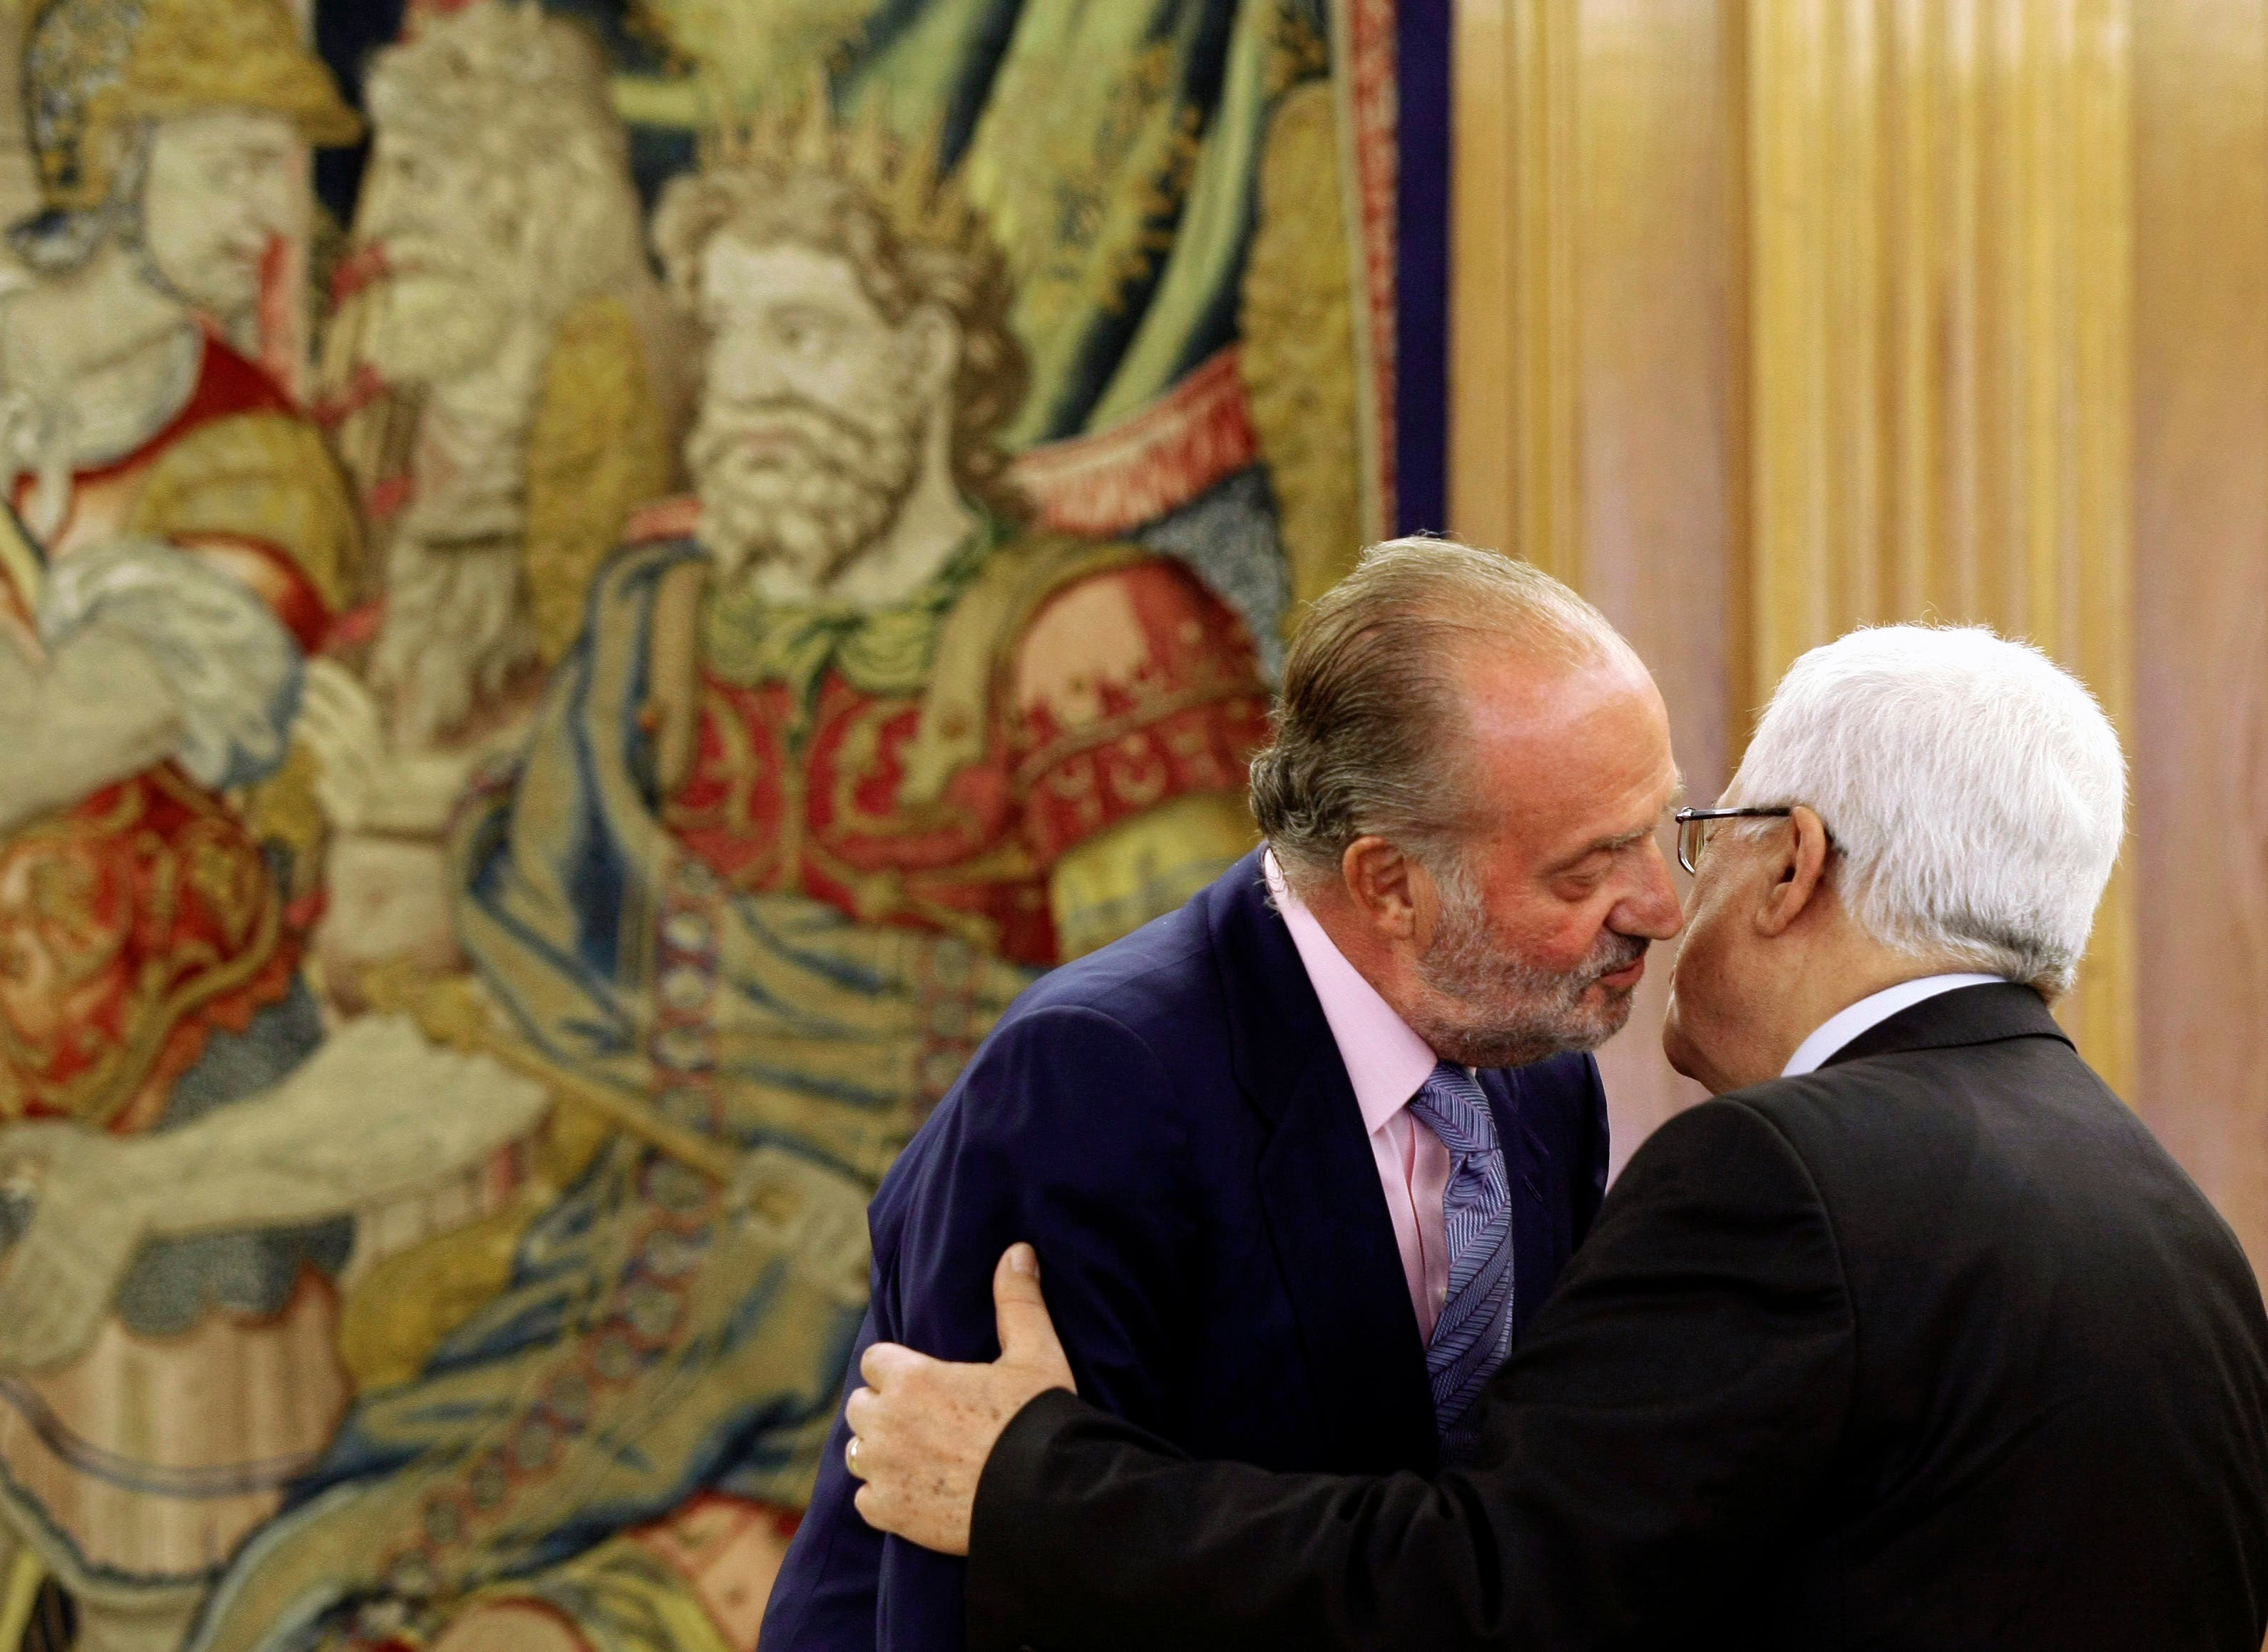 Spain's King Juan Carlos (L) welcomes Palestinian President Mahmoud Abbas at Zarzuela Palace in Madrid September 2, 2009. (Reuters)